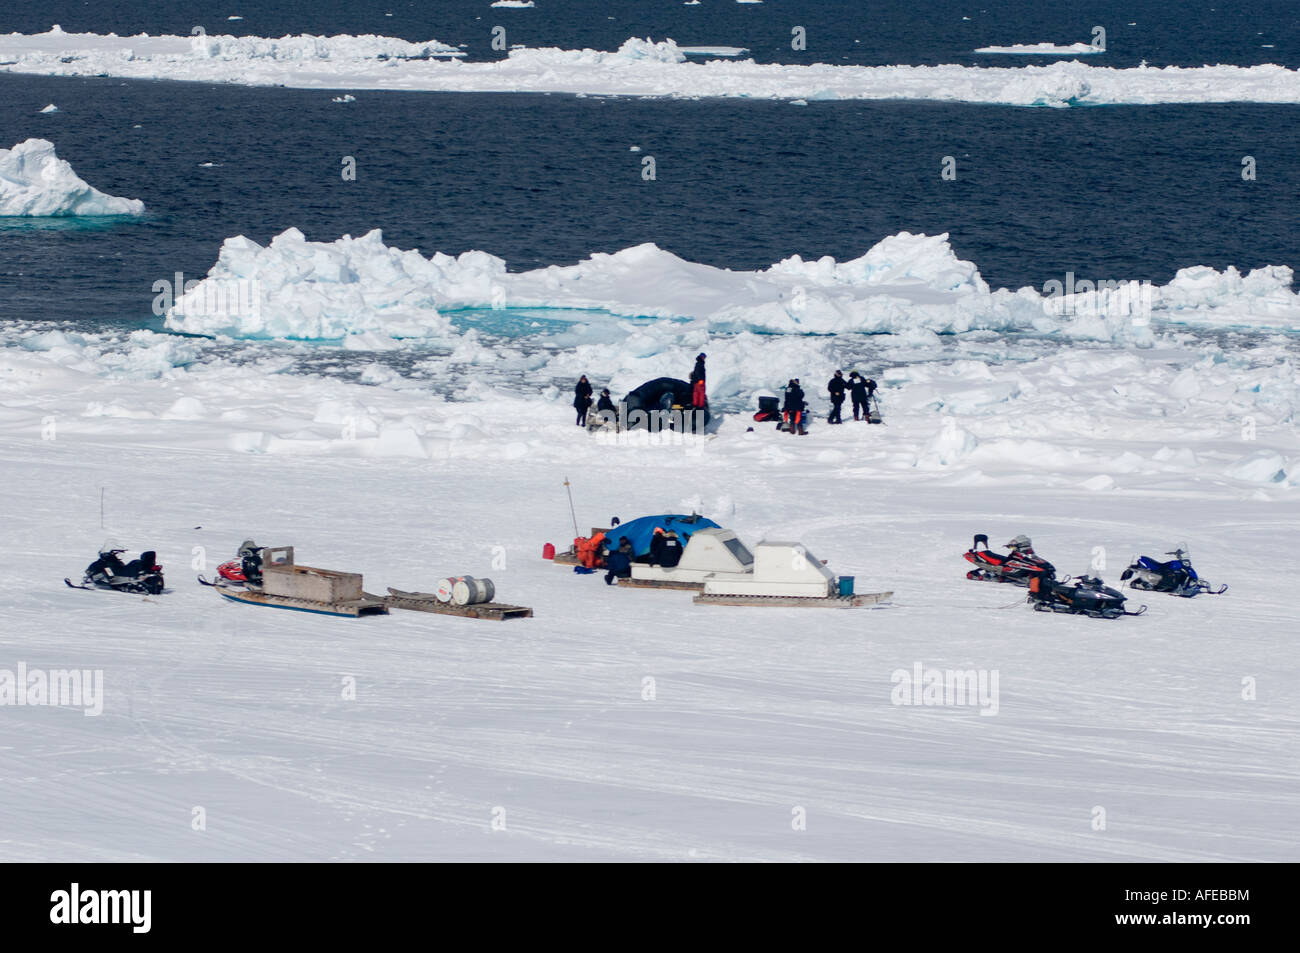 Snowmobile and sleds or qamotiqs plus zodiac  support diving film crew at the floe edge in the high Arctic. Disneynature - Stock Image